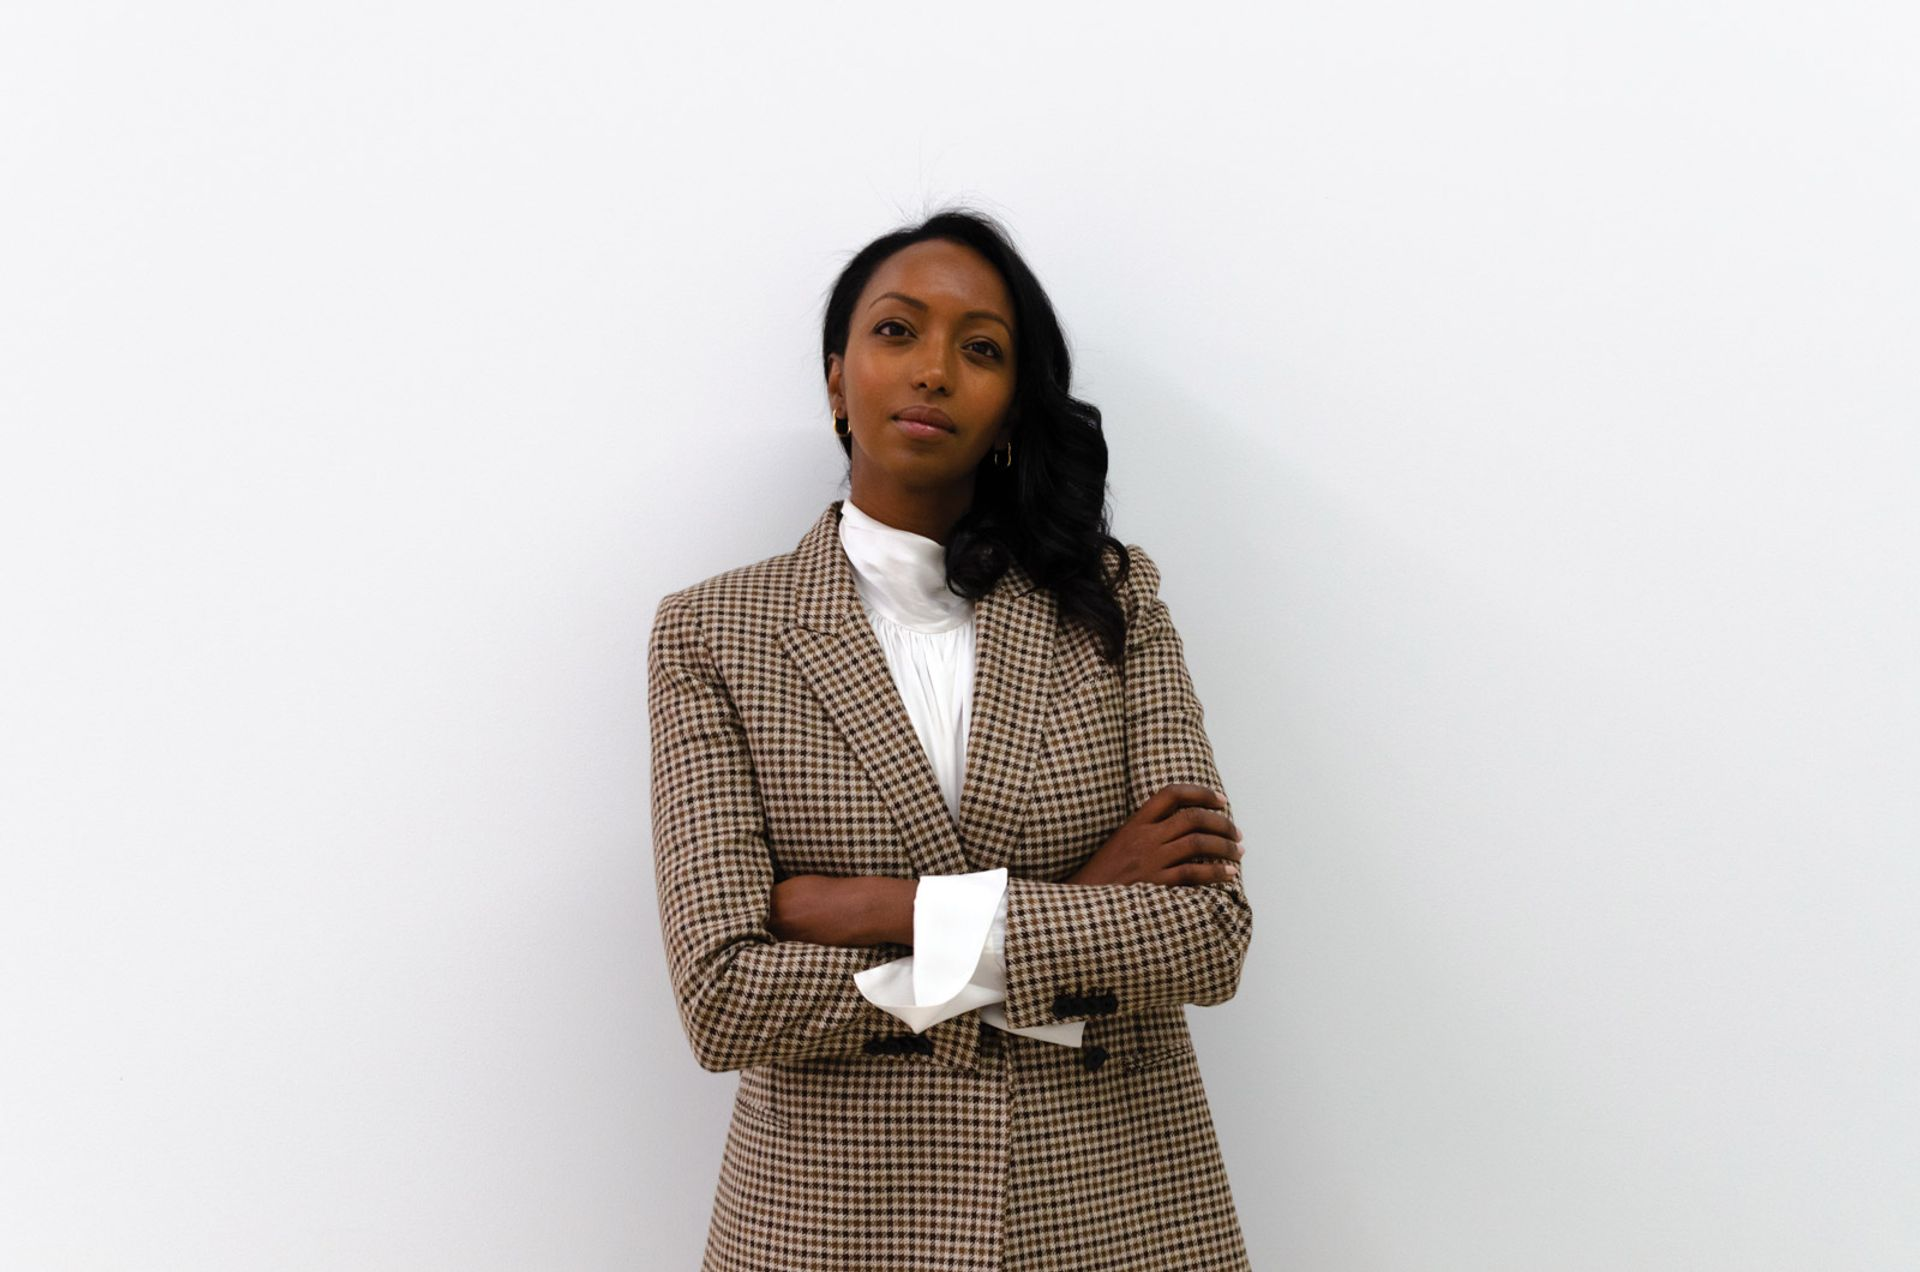 Mariane Ibrahim quickly rose to prominence on the art fair circuit,winning the Armory Show's first Presents prize in 2017 Photo: Sofia Giner